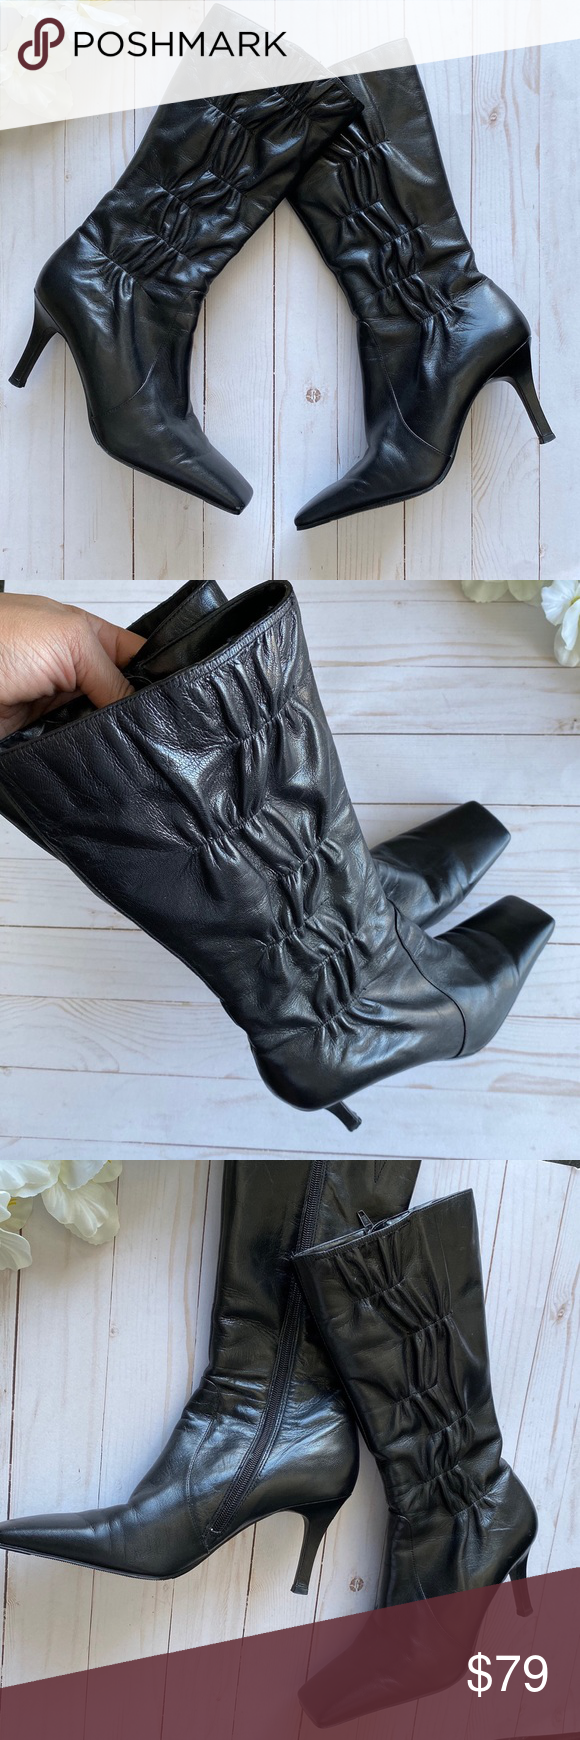 Black Leather Square Toe Boot ON TREND Ann Marino Genuine Black Leather Square Toe currently on trend Gathered Sides  Quilted Comfortable Heel Height 3 14 Great condition...